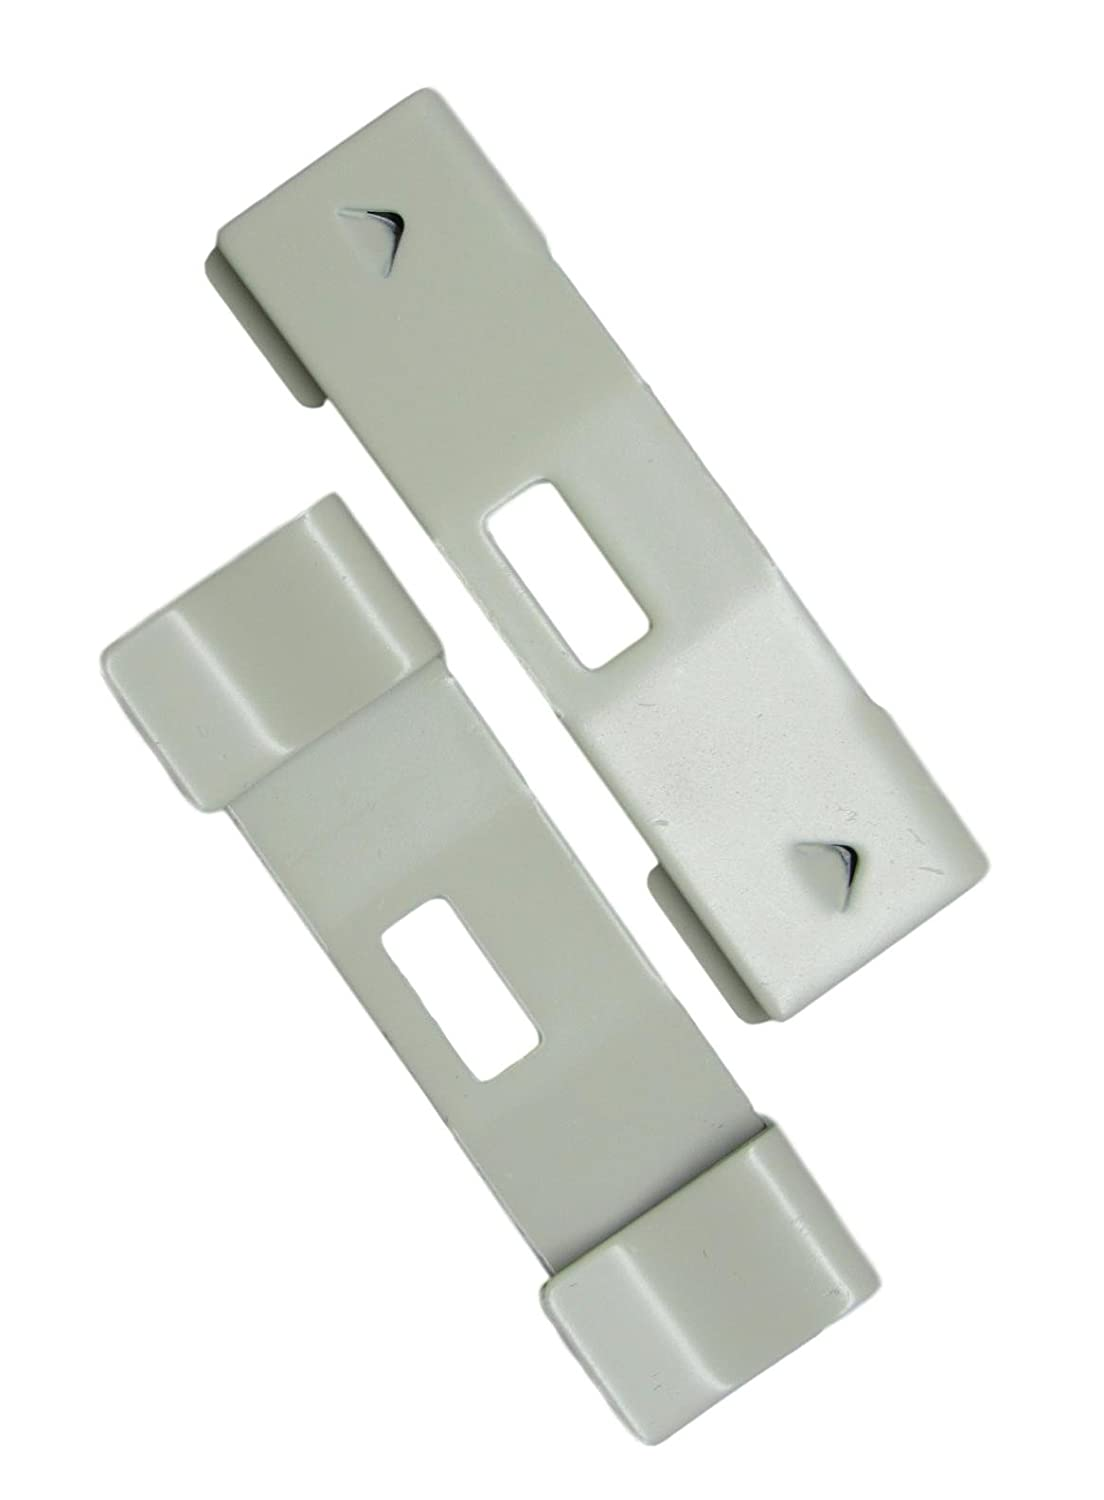 20 Pack Vertical Blind Vane Saver ~ Ivory Curved Repair Clips ~ Fixes Broken gmagroup 20 Curved Ivory Vane Savers